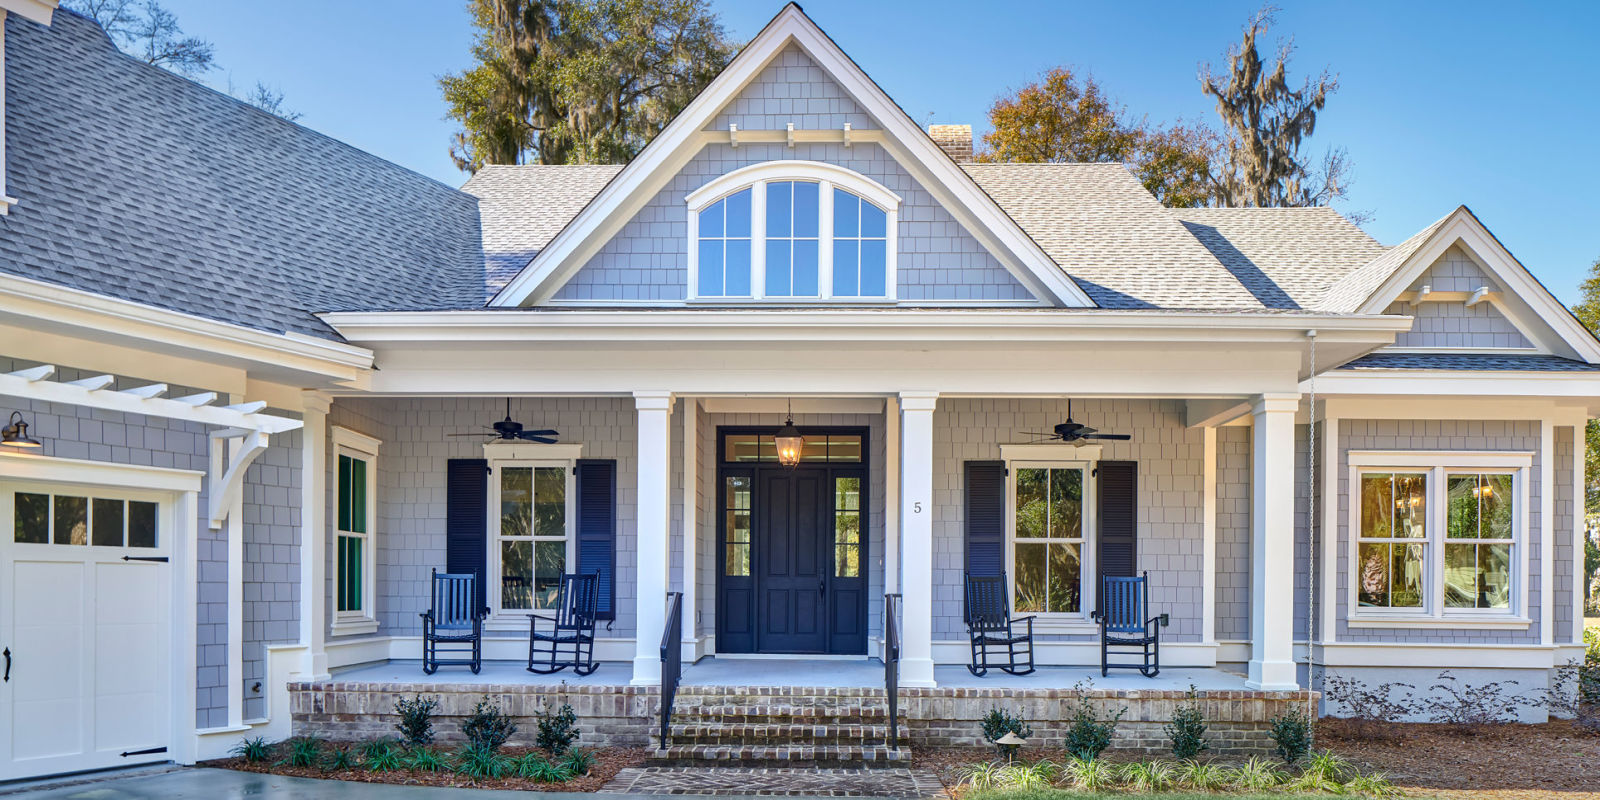 Front Elevation Landscaping : Colleton river plantation home decorating with dark colors